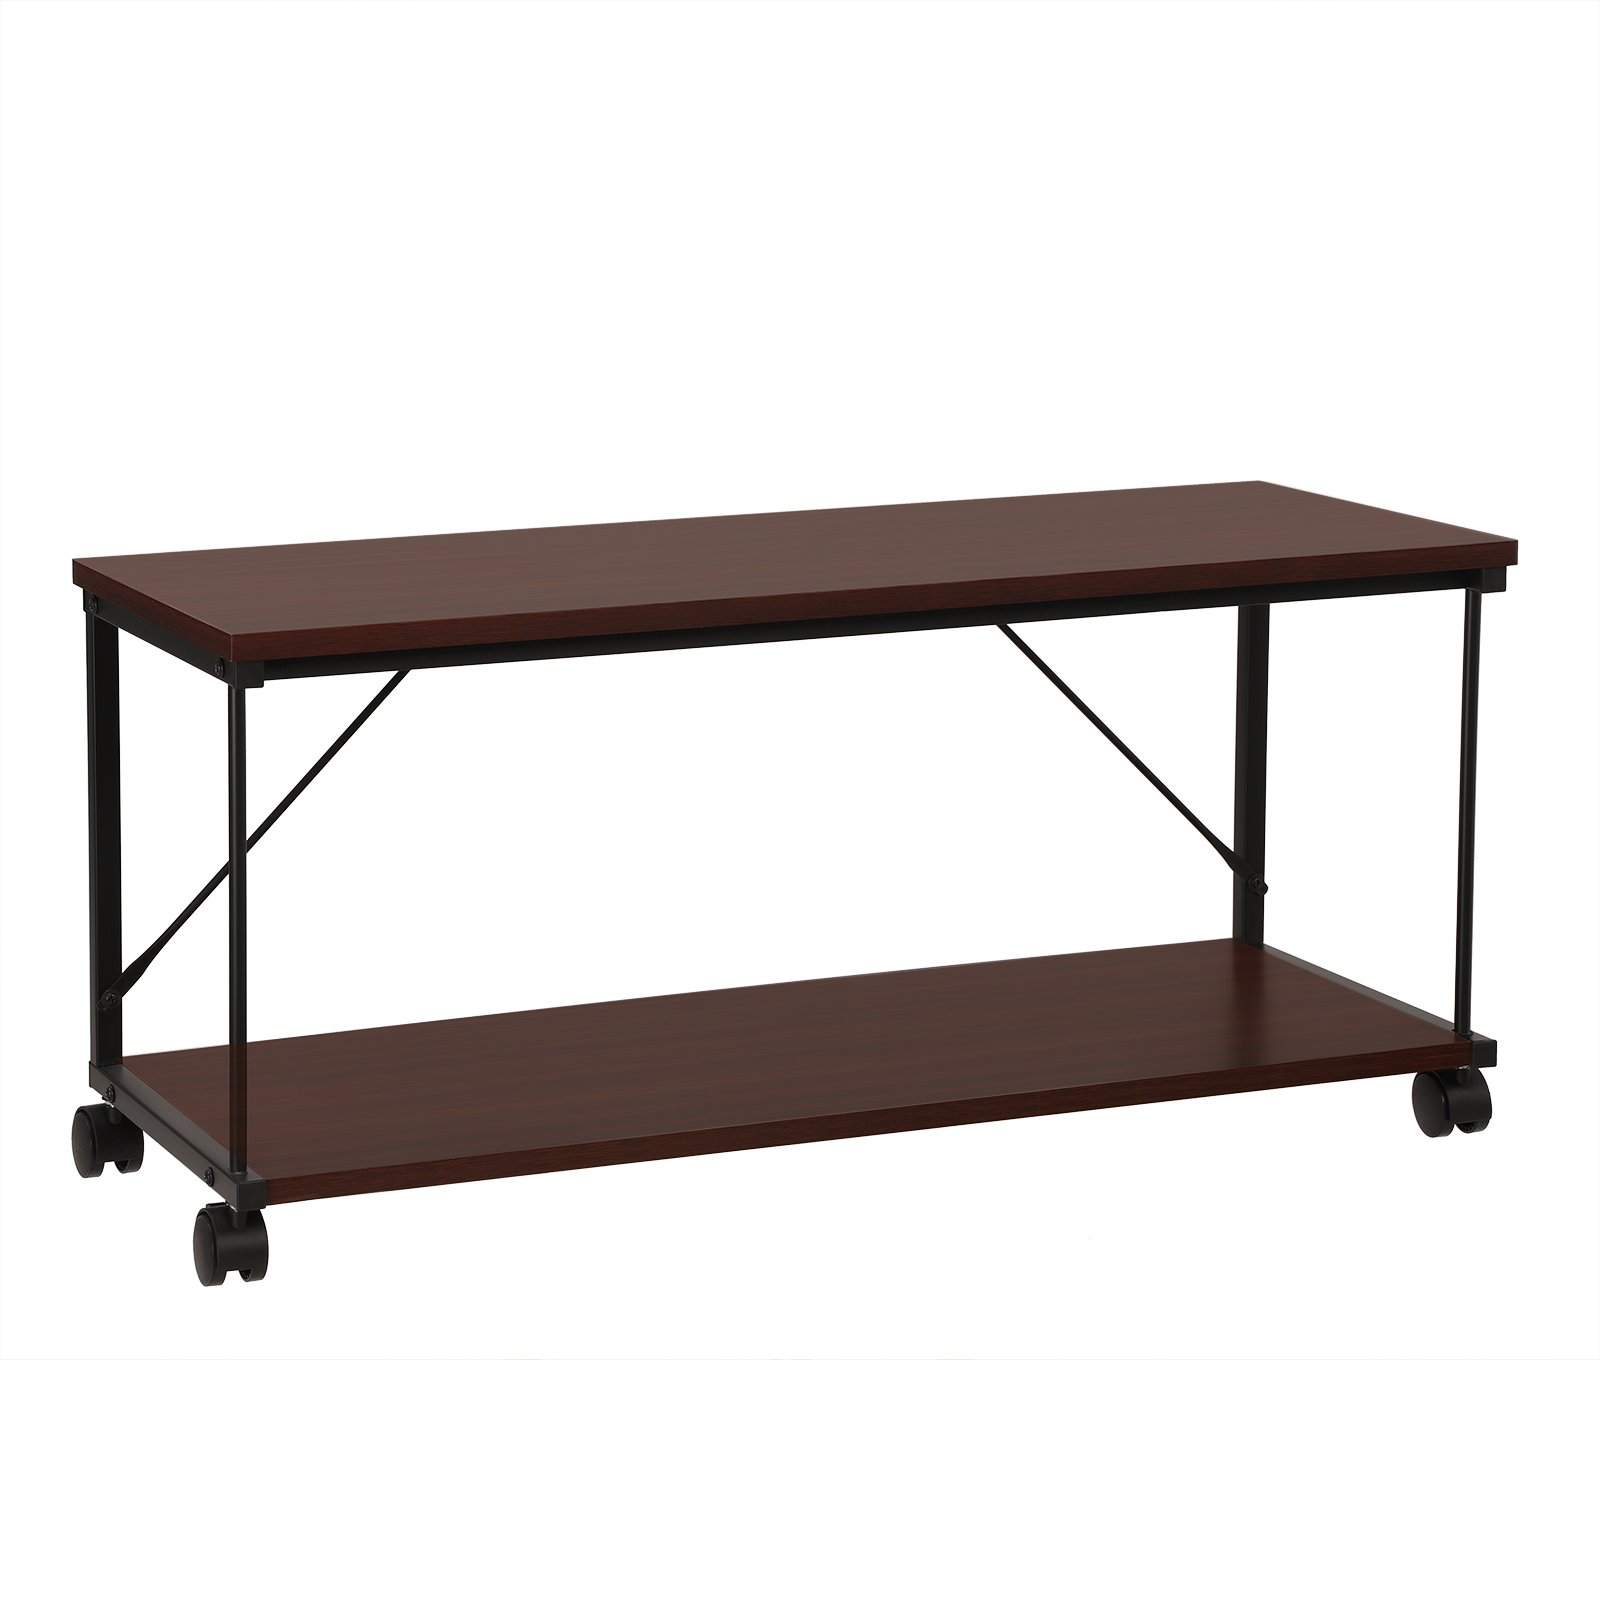 SONGMICS Coffee Table, Mobile TV Stand Cabinet with Wheels, Reddish Brown Wood Grain and Black Metal ULTV10BZ